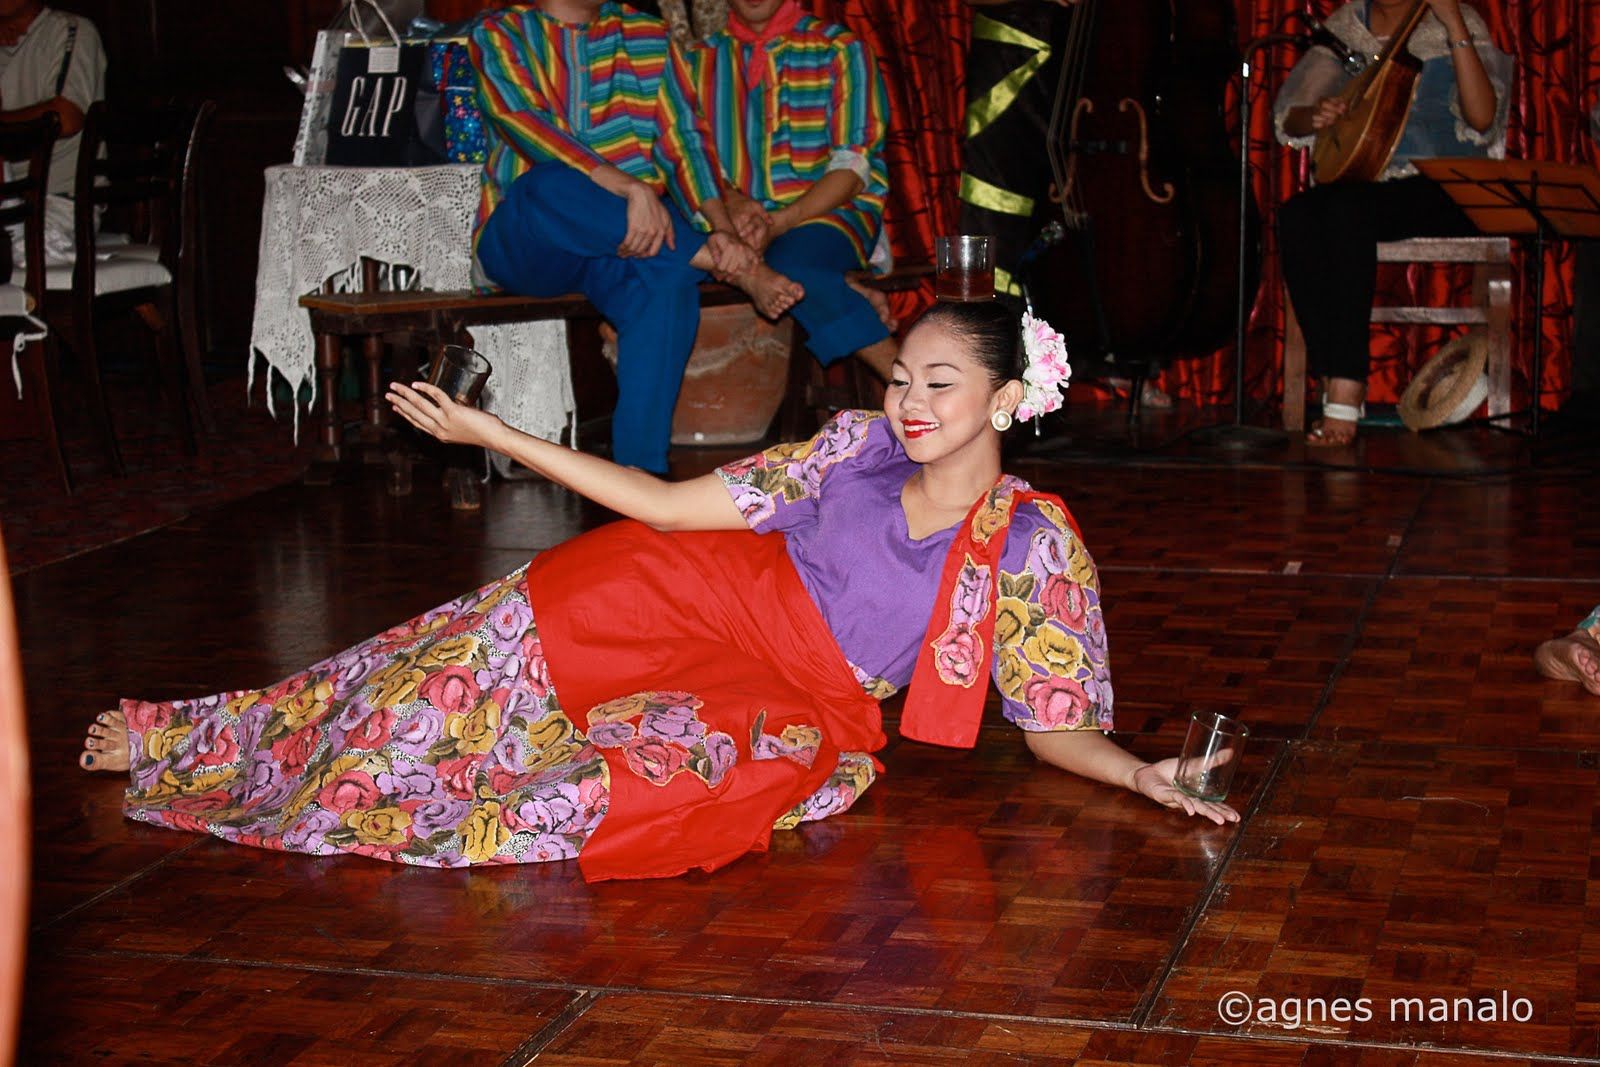 Filipino Traditional Dance http://mayniladailyphoto.blogspot.com/2011_08_01_archive.html